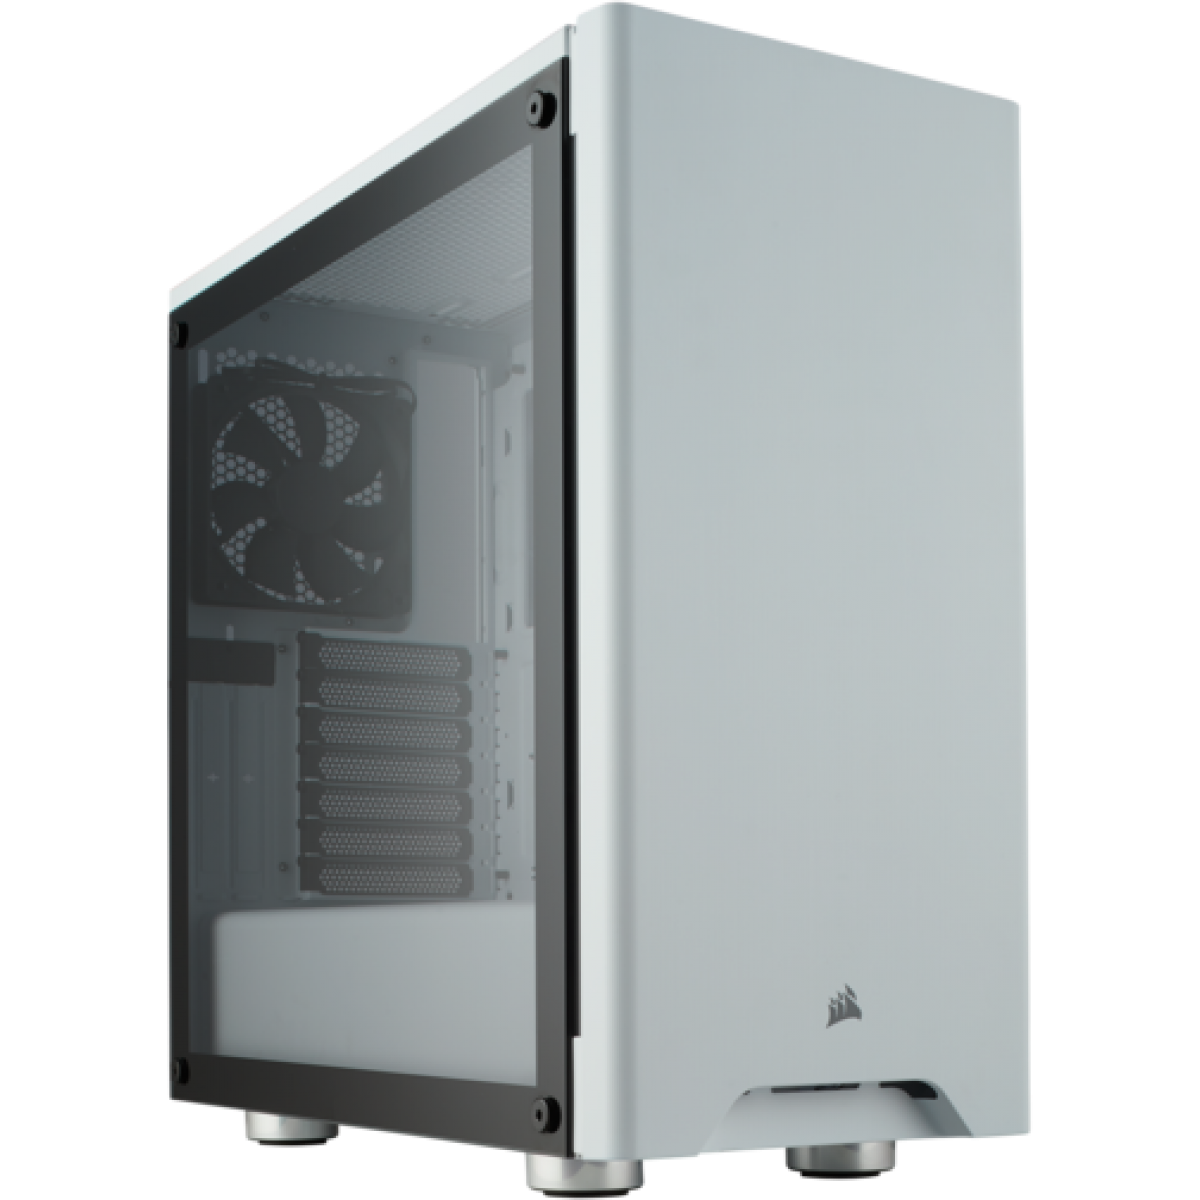 Gabinete Gamer Corsair Carbide 275R, Mid Tower, Com 2 Fans, Vidro Temperado, White, S-Fonte CC-9011133-WW